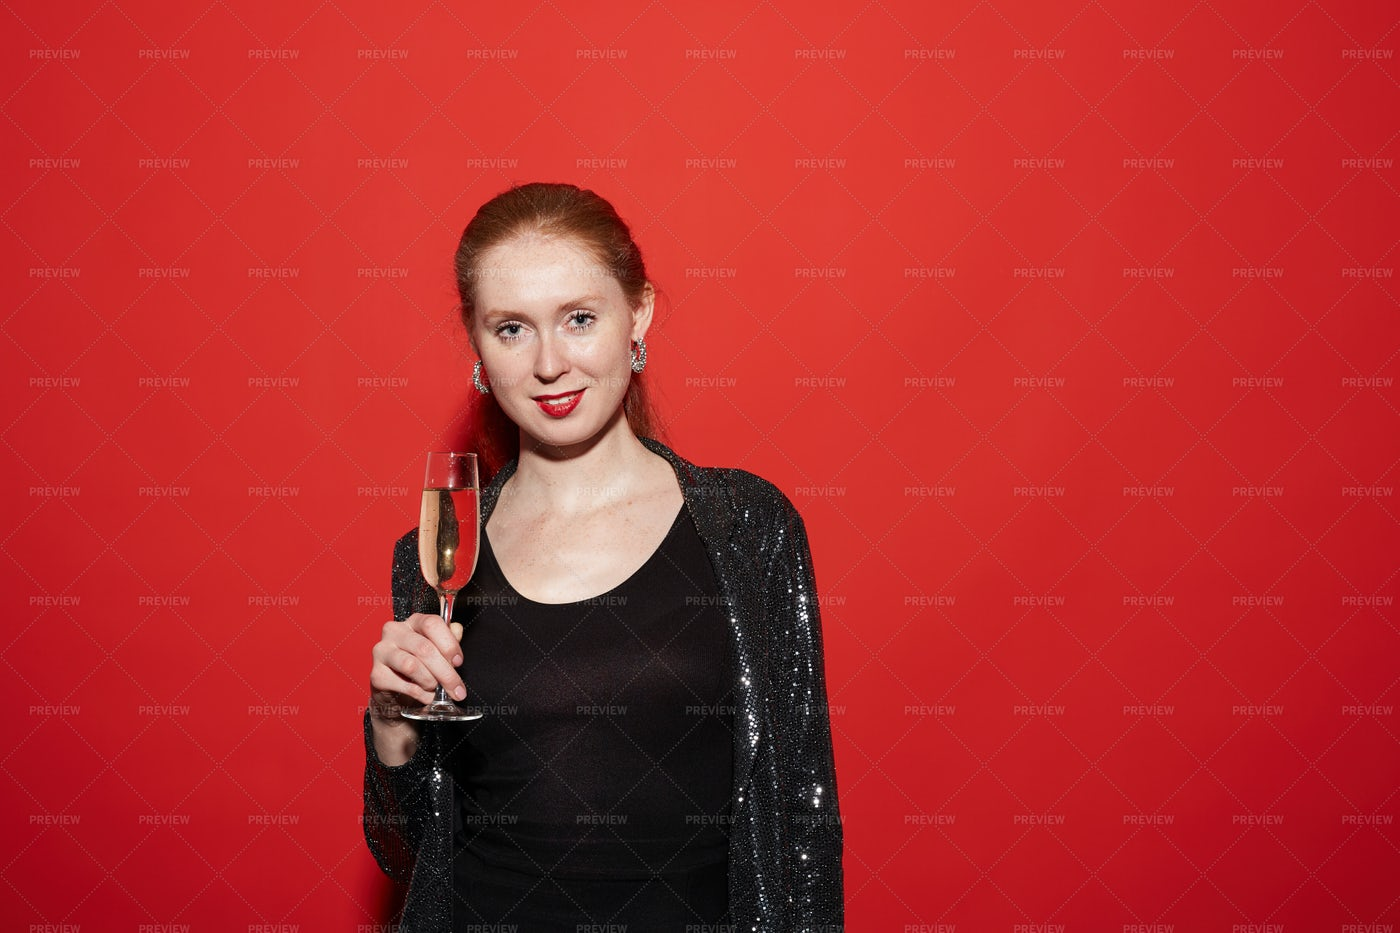 Young Woman Posing With Champagne...: Stock Photos